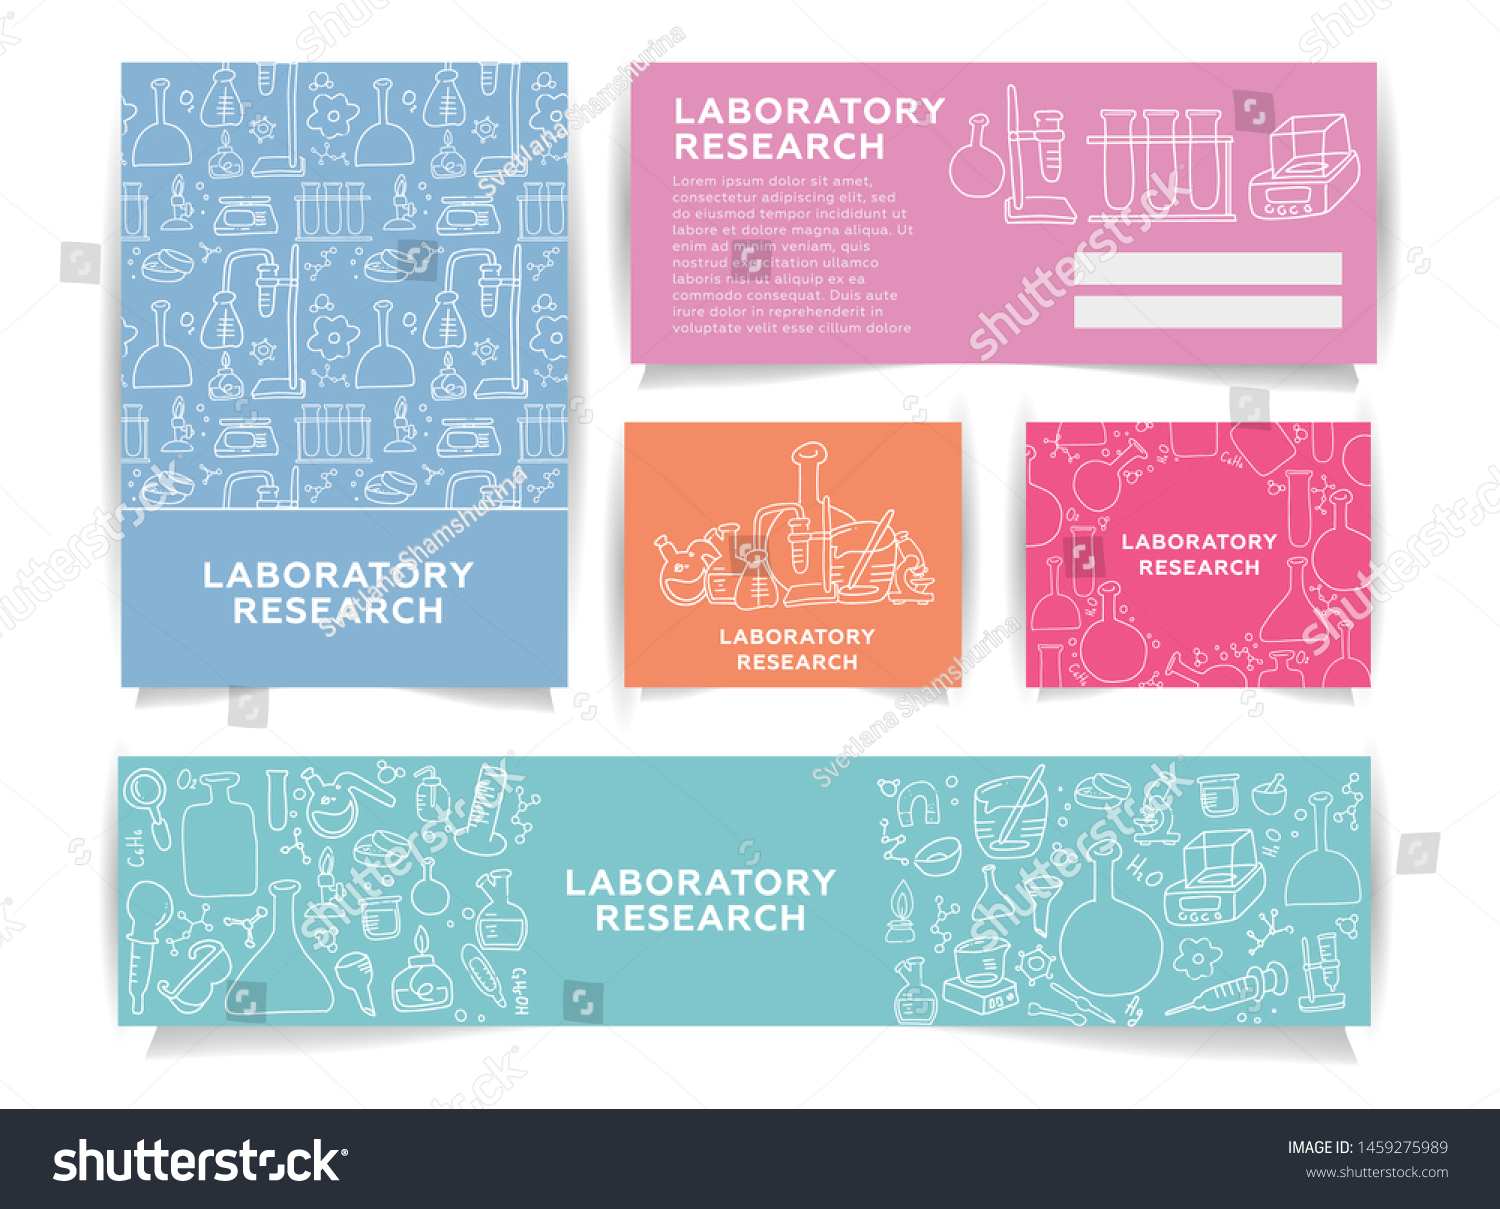 Information Cards Template from image.shutterstock.com